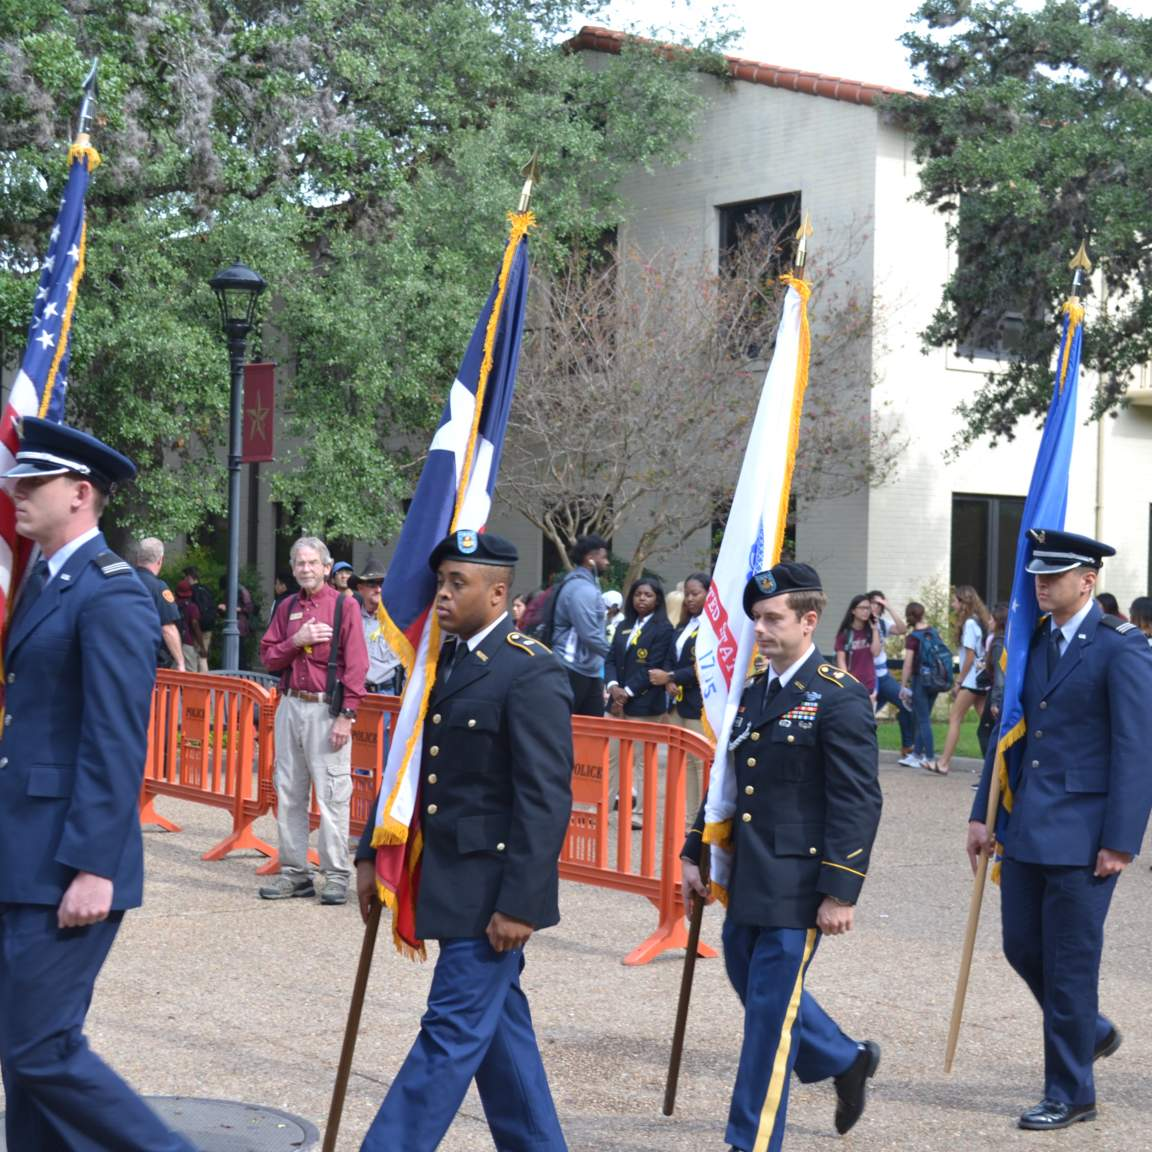 Texas State ROTC posting the colors